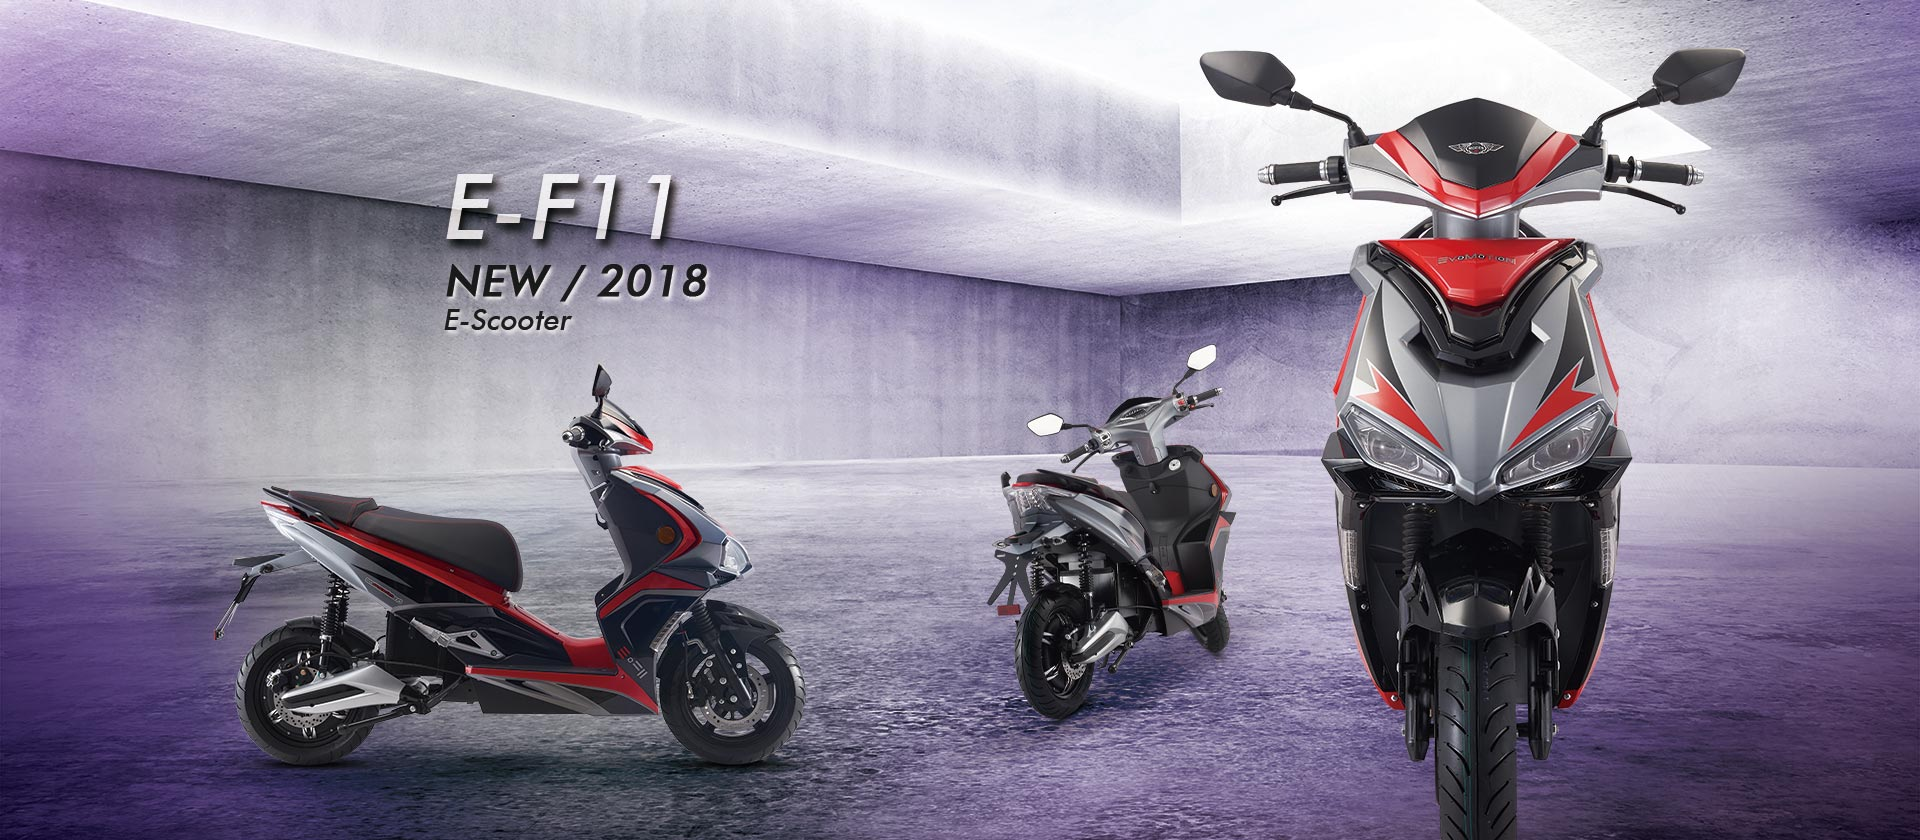 ZNEN_scooter_home_banner_e-f11